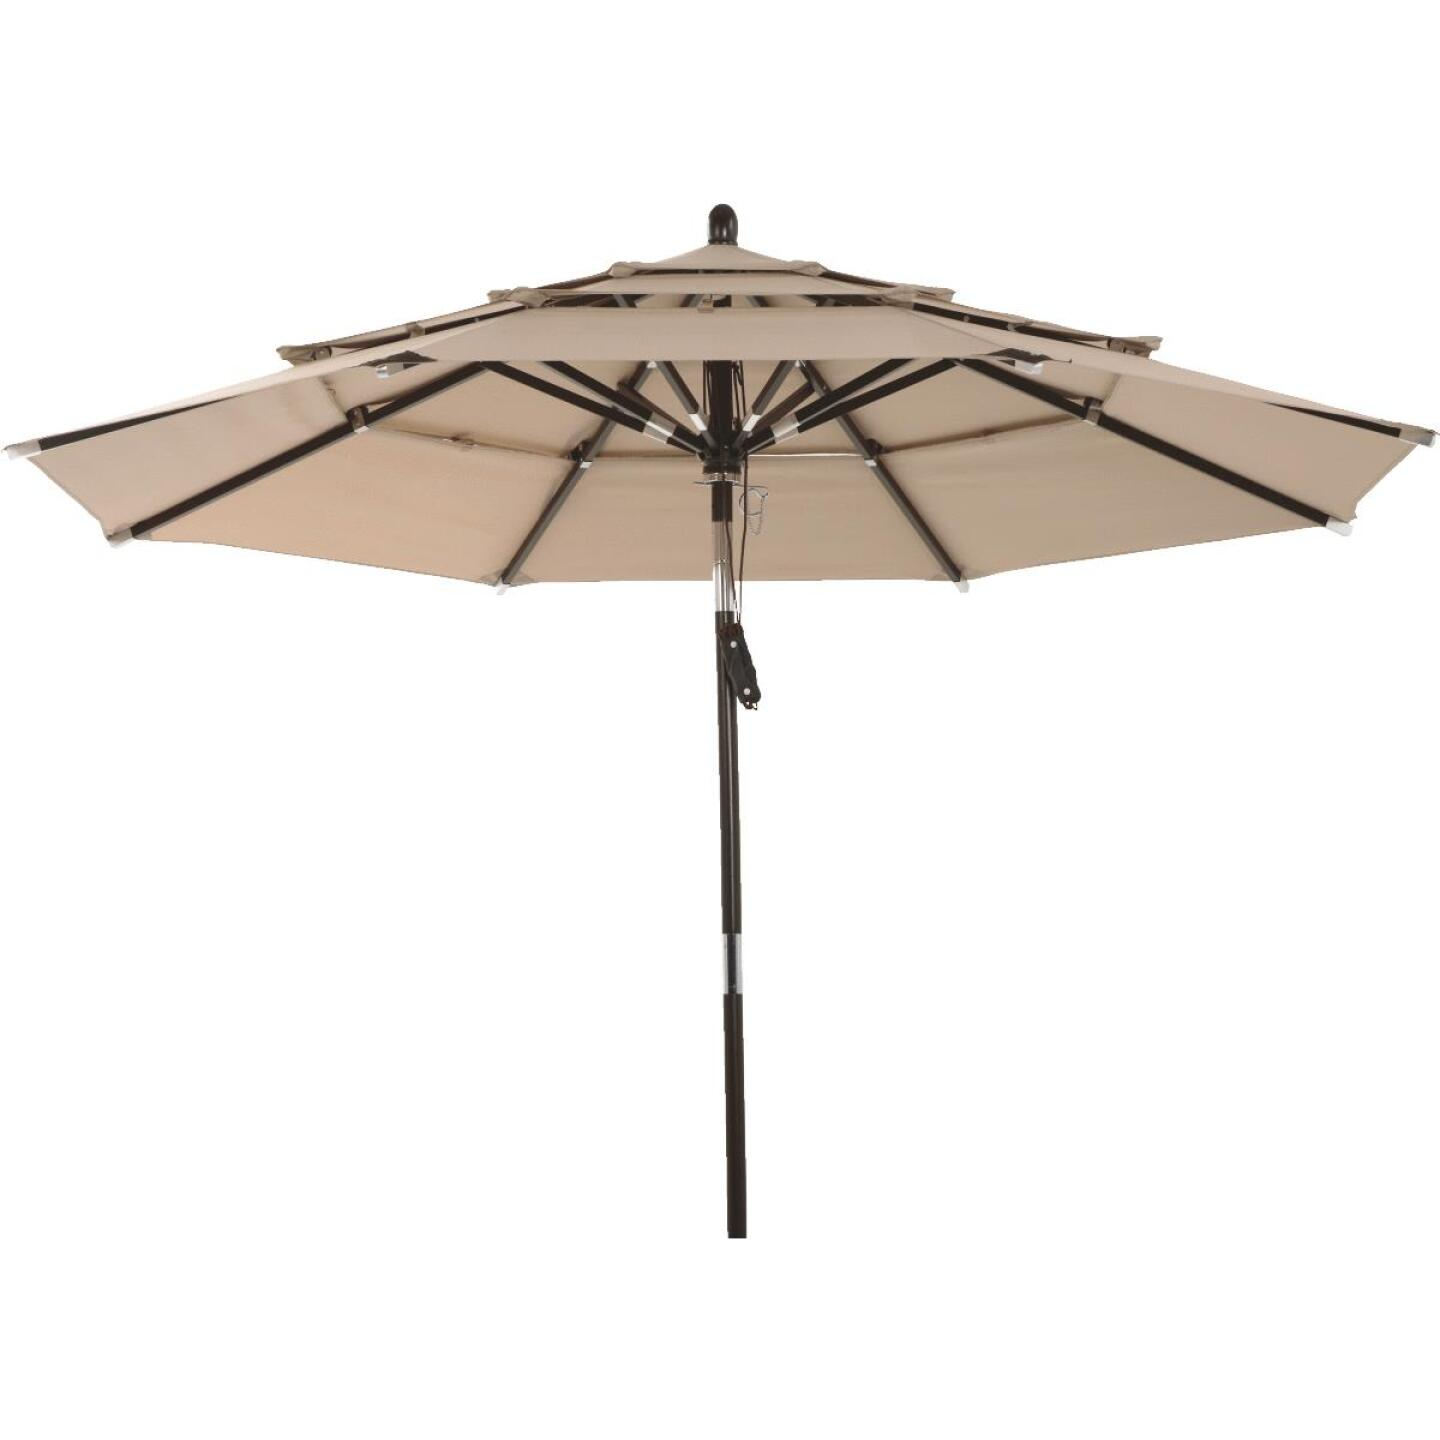 Outdoor Expressions 9 Ft. 3-Tier Tilt/Pulley Tan Patio Umbrella Image 8